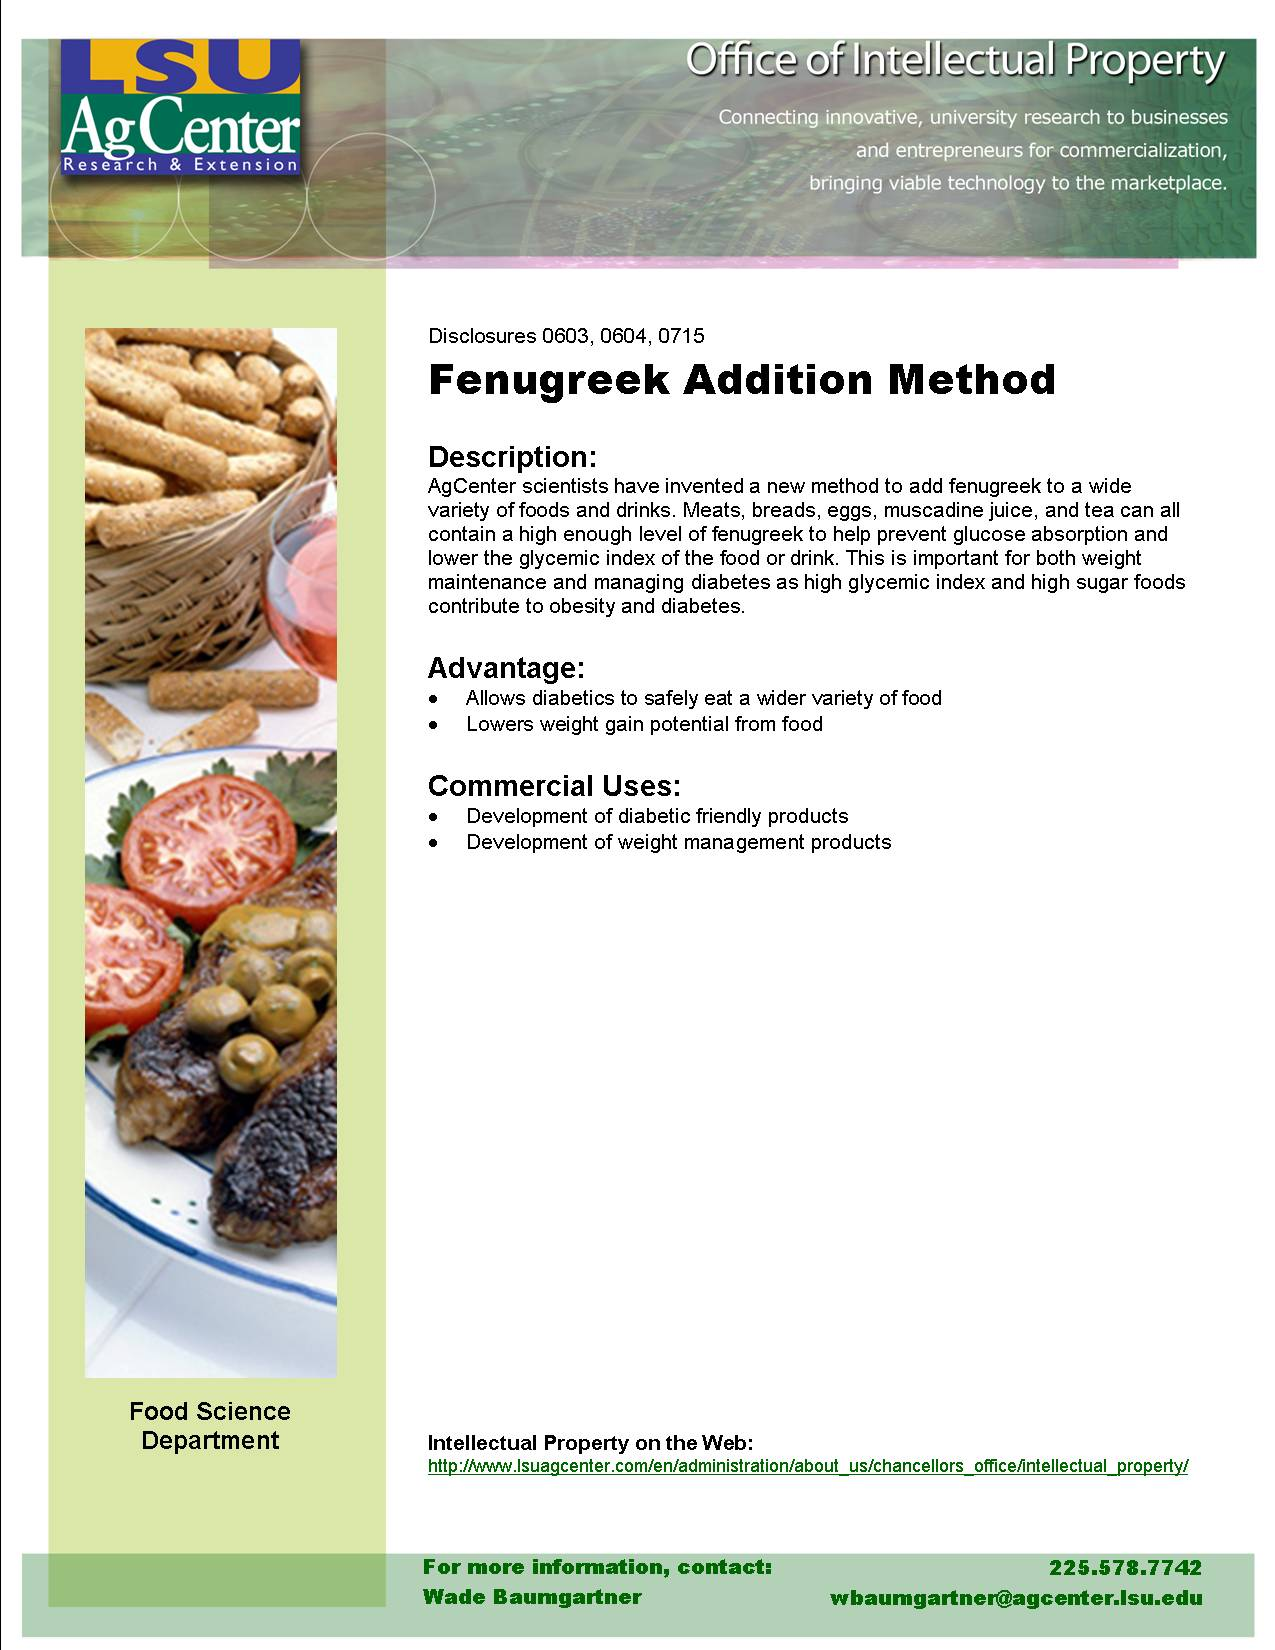 Improved Fenugreek Addition Method